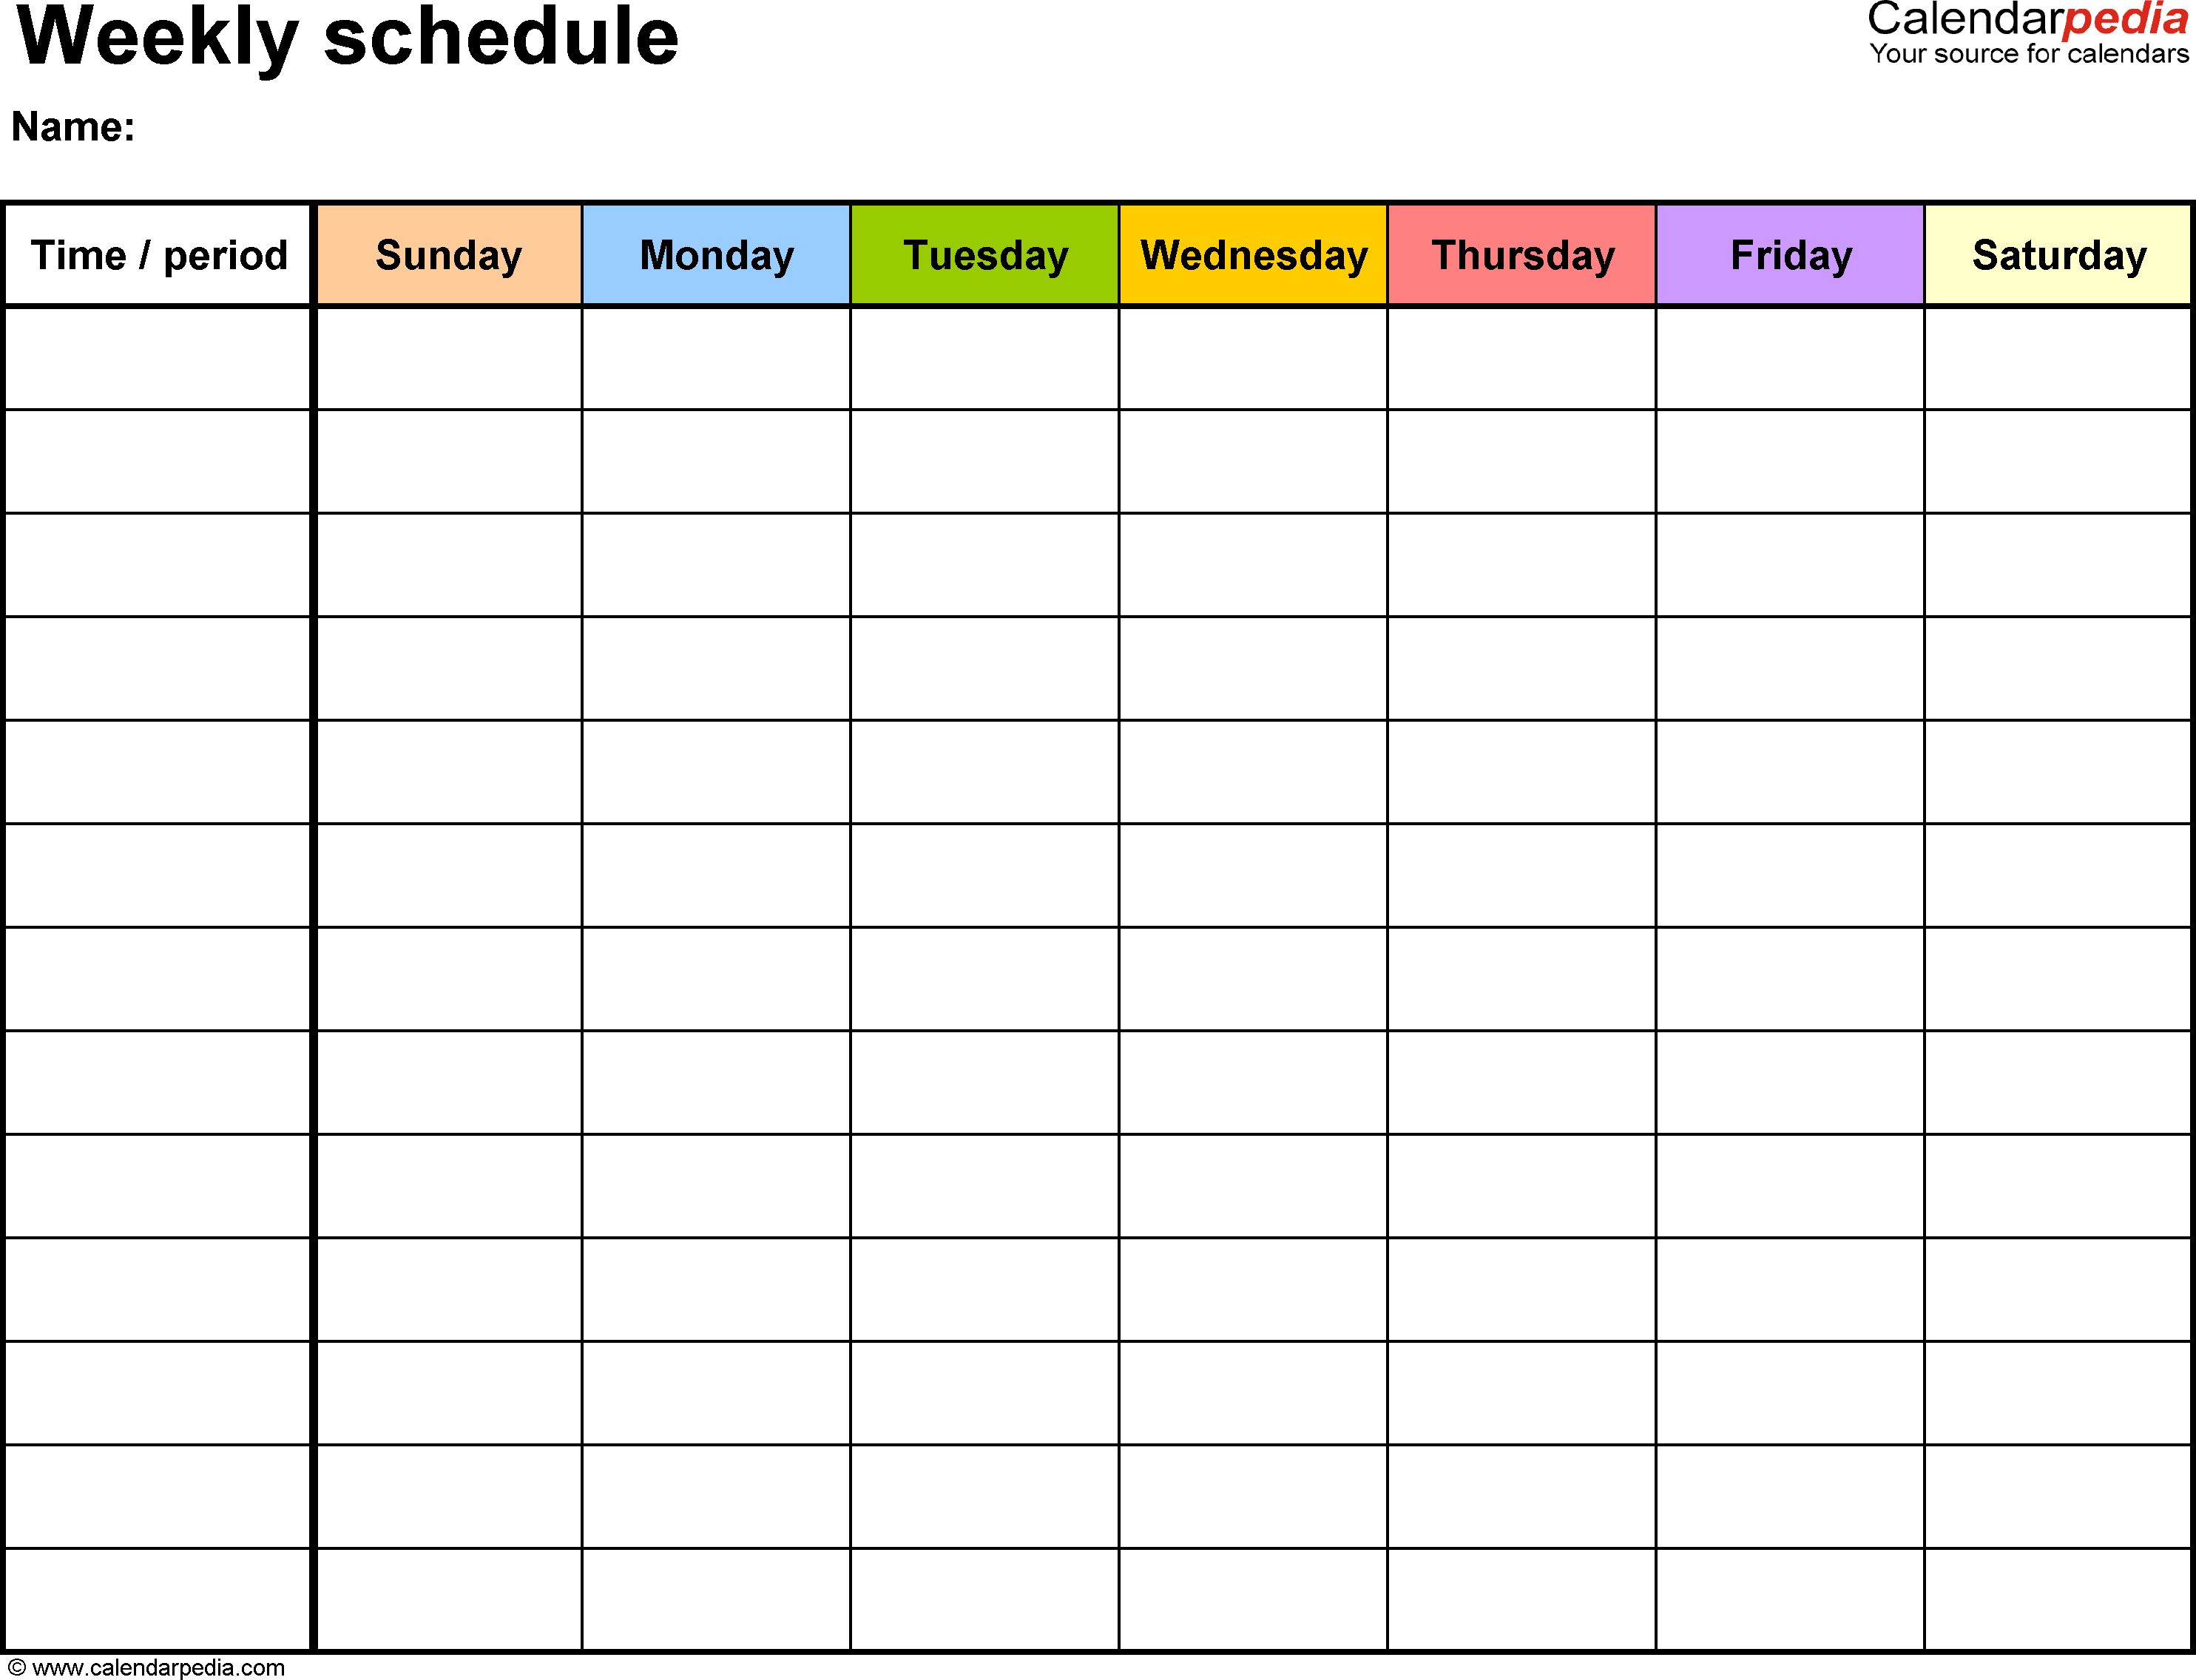 Free Weekly Schedule Templates For Word   Templates In Blank Trip Itinerary Template